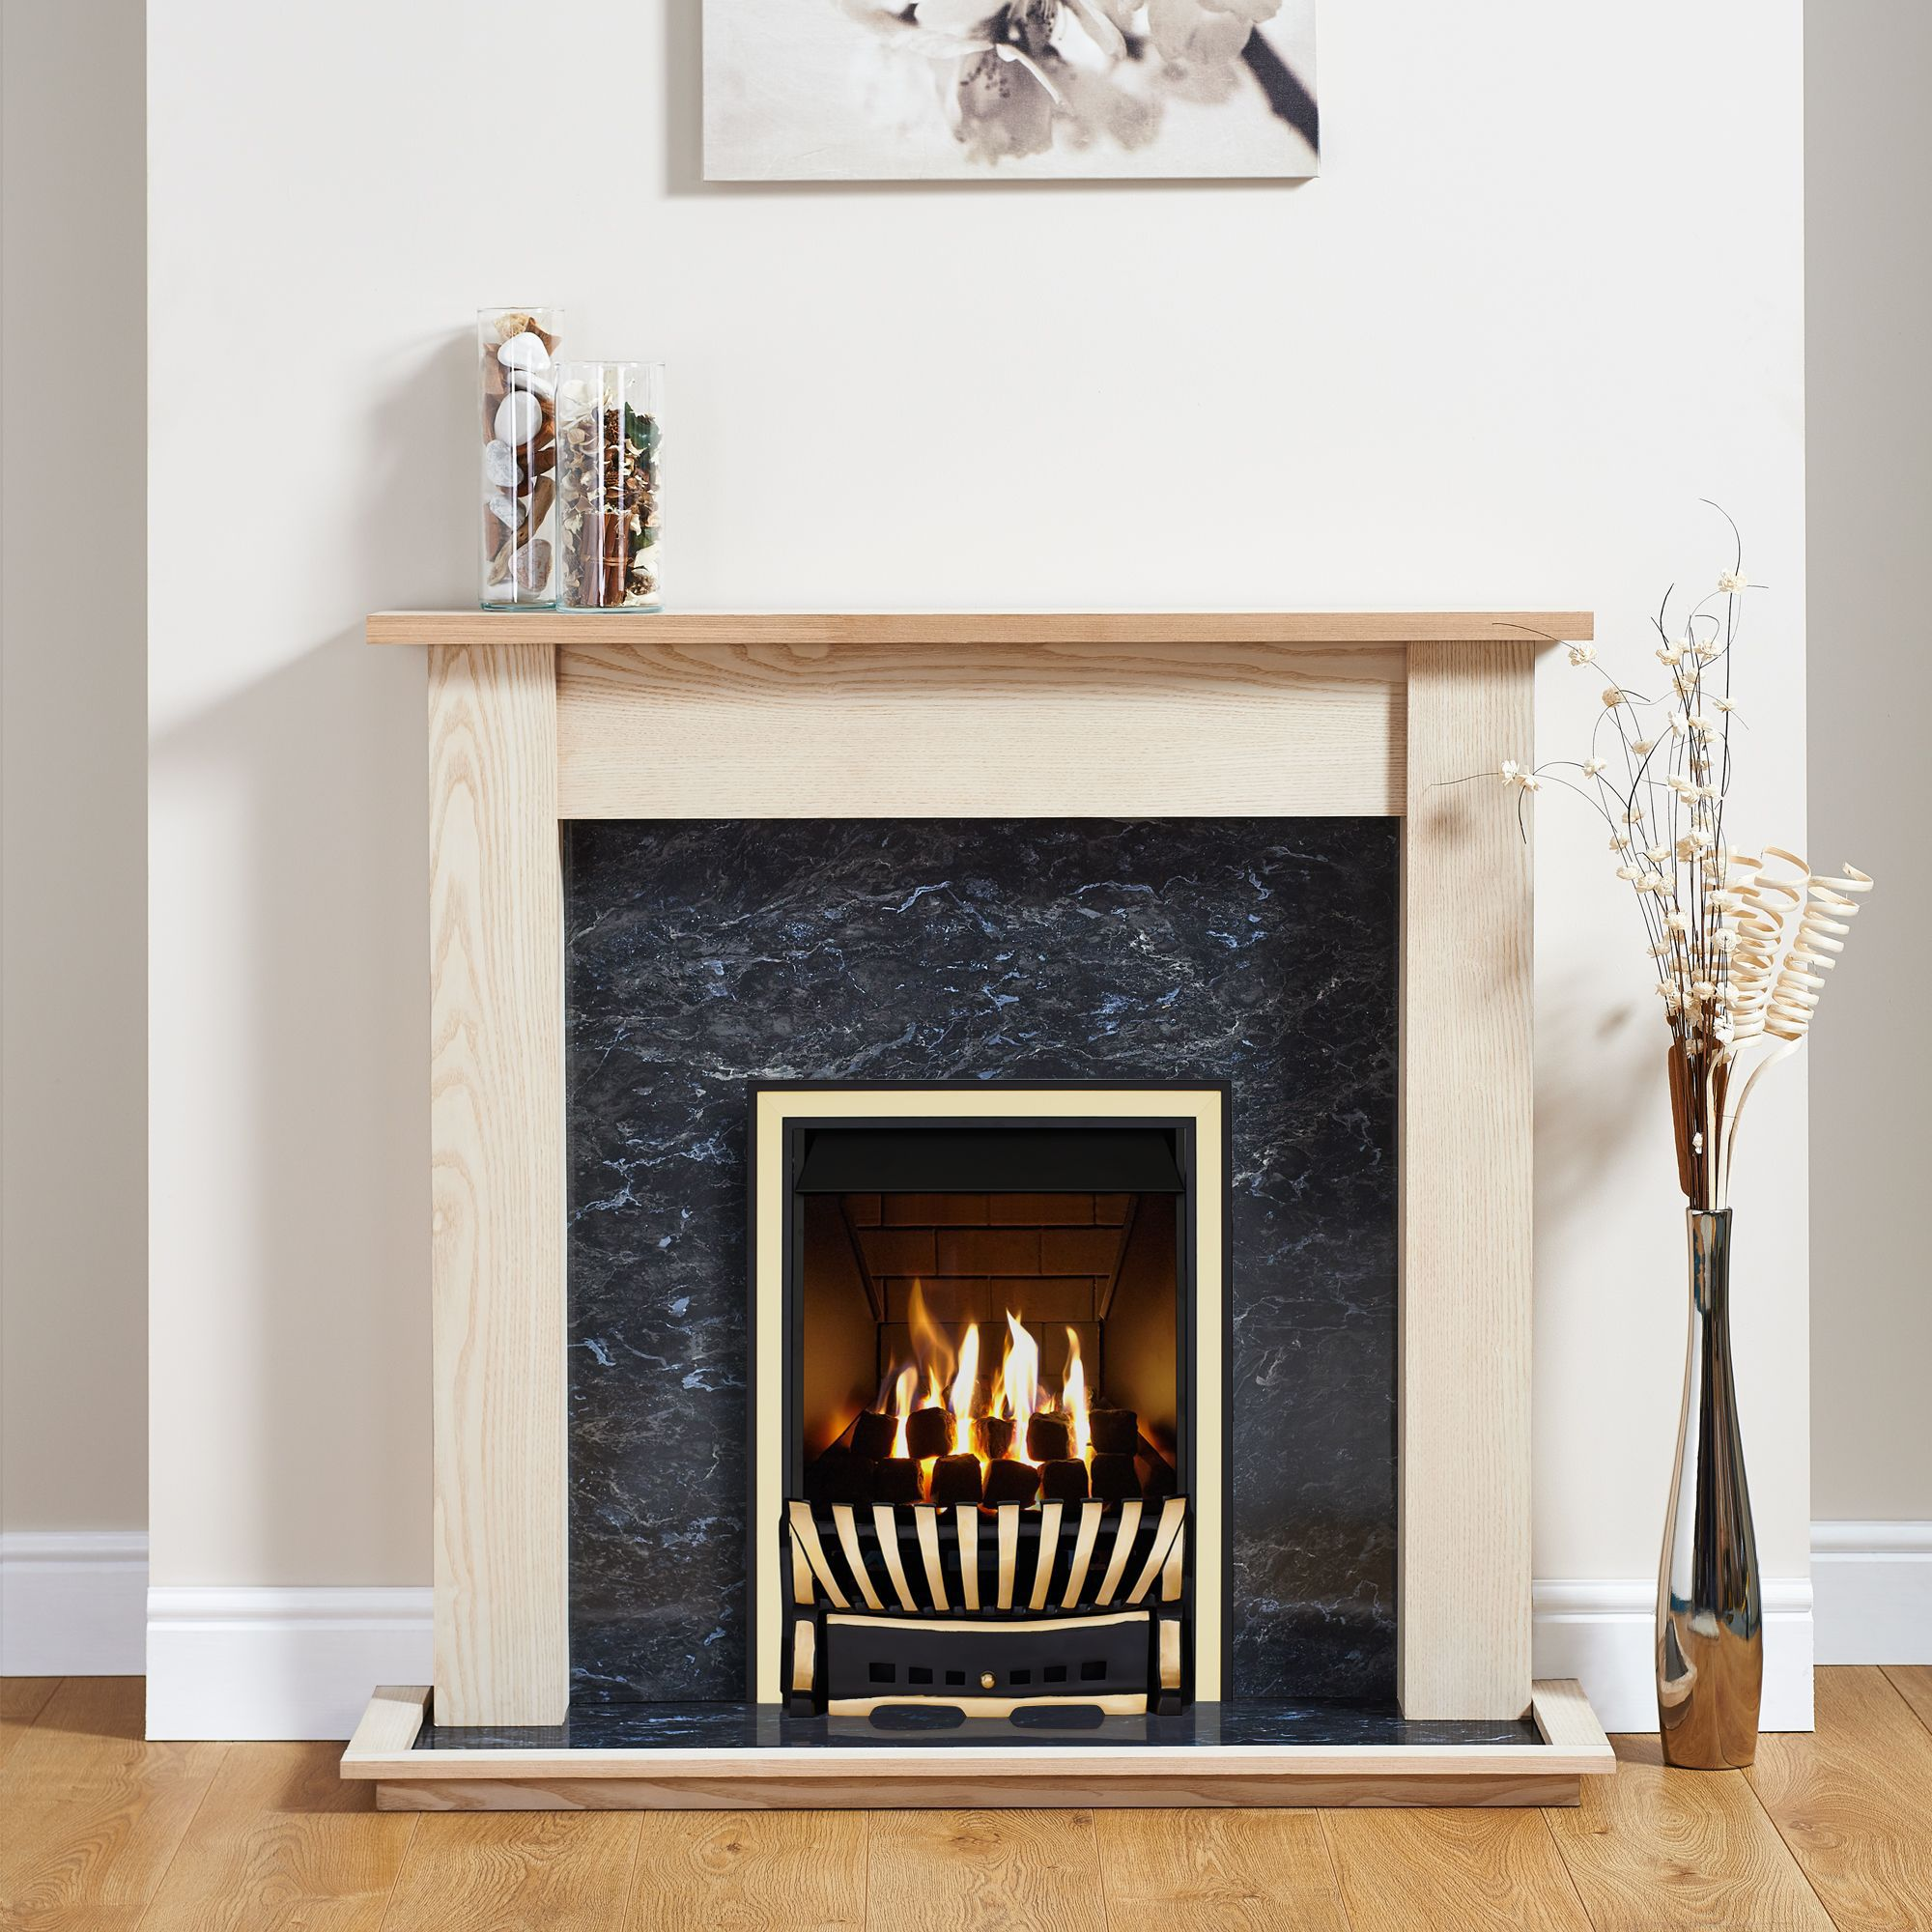 Focal Point Elegance Brass & Black Inset Gas Fire Suite